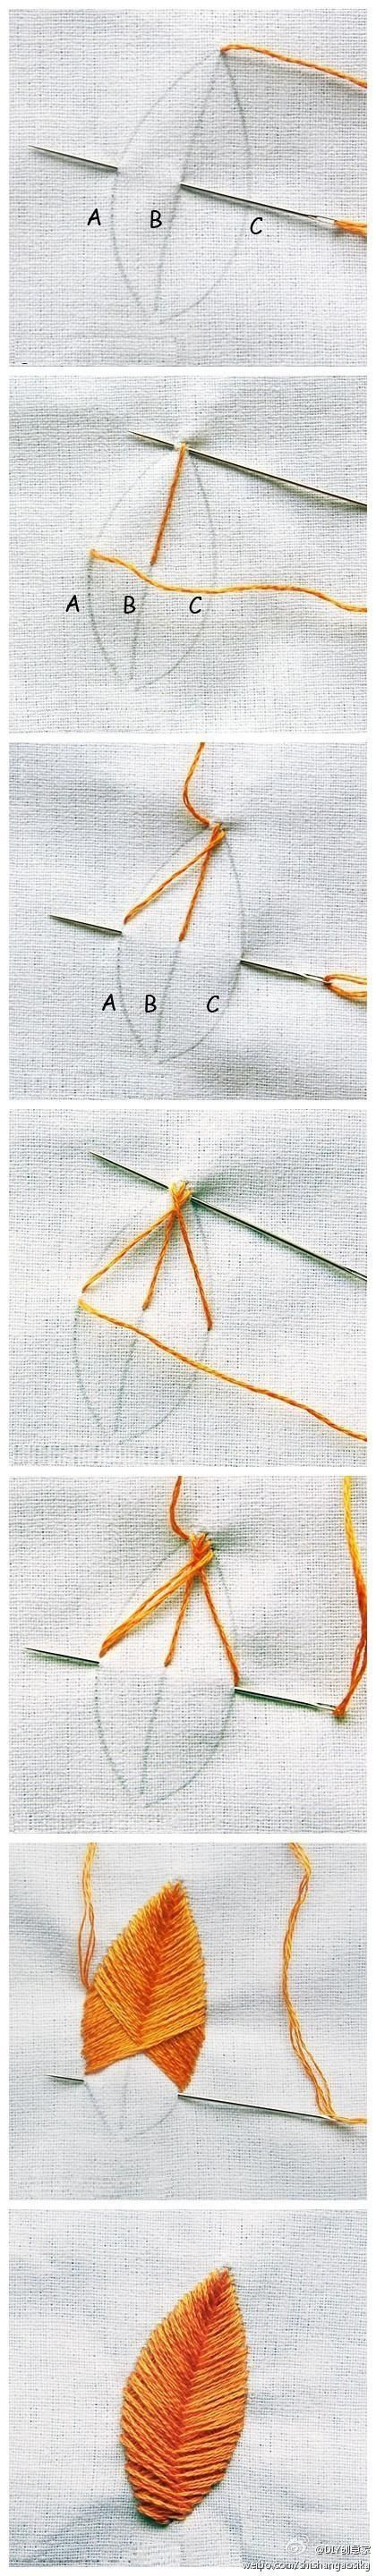 Embroider a leaf tutorial.